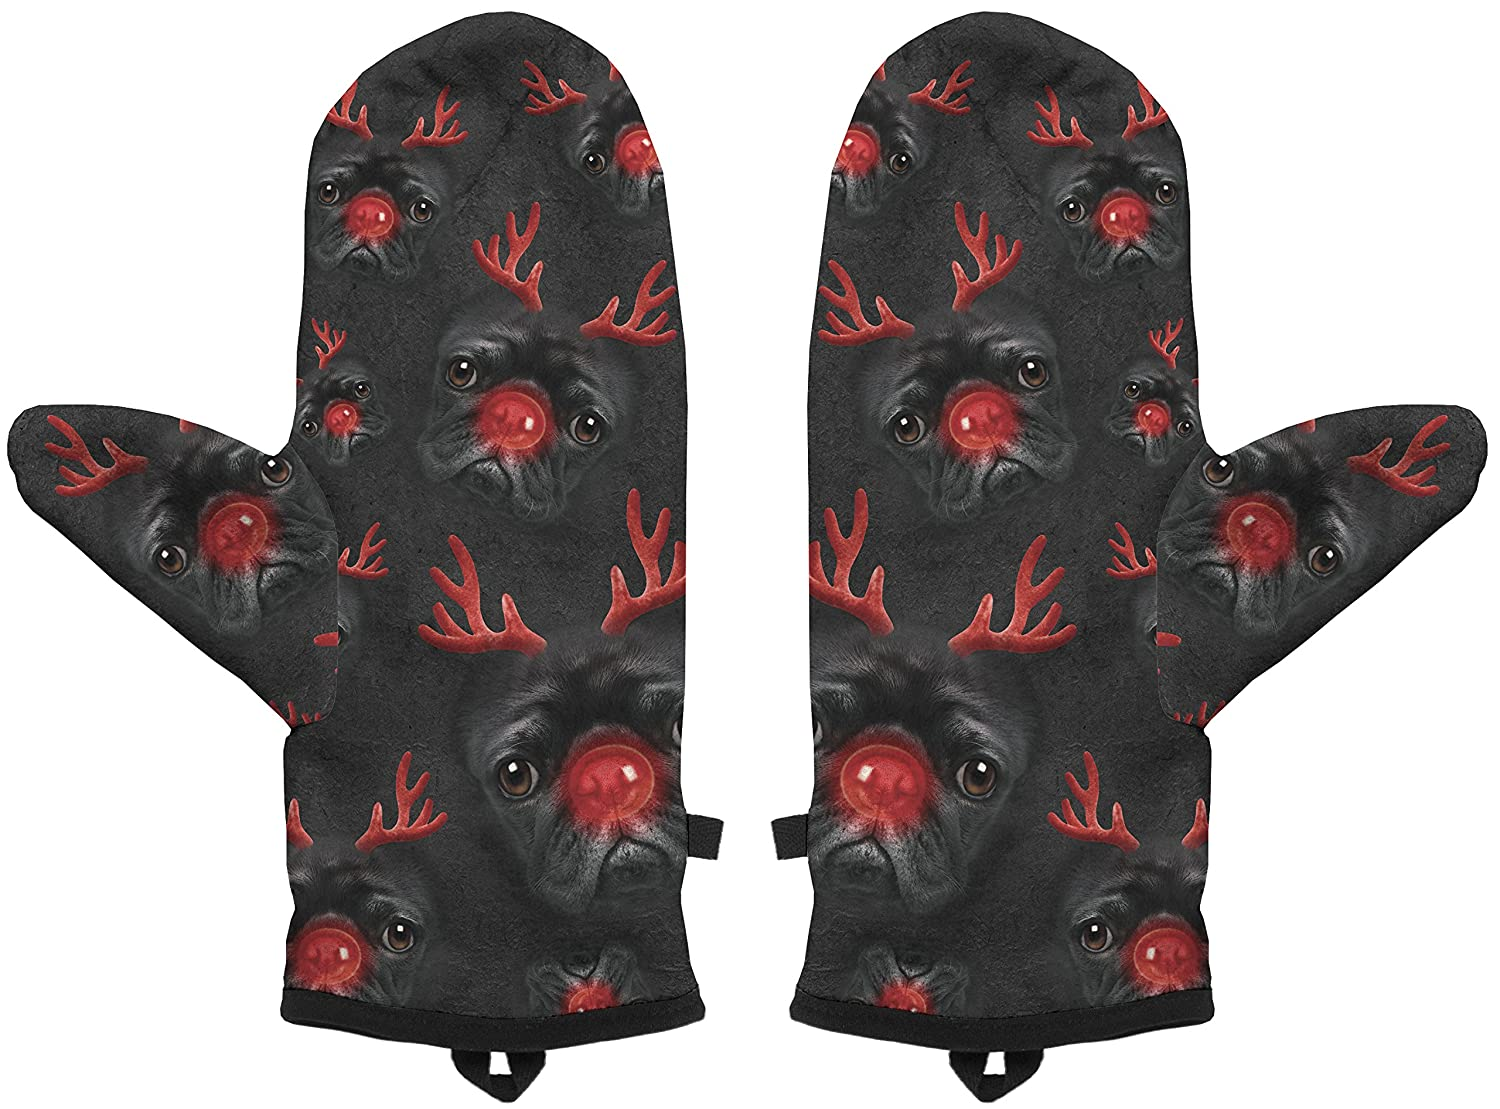 Fringoo Big Boys Mittens Winter Gloves Fully Printed Christmas Dog Warm Gloves One Size Fits S M Reindeer Pug